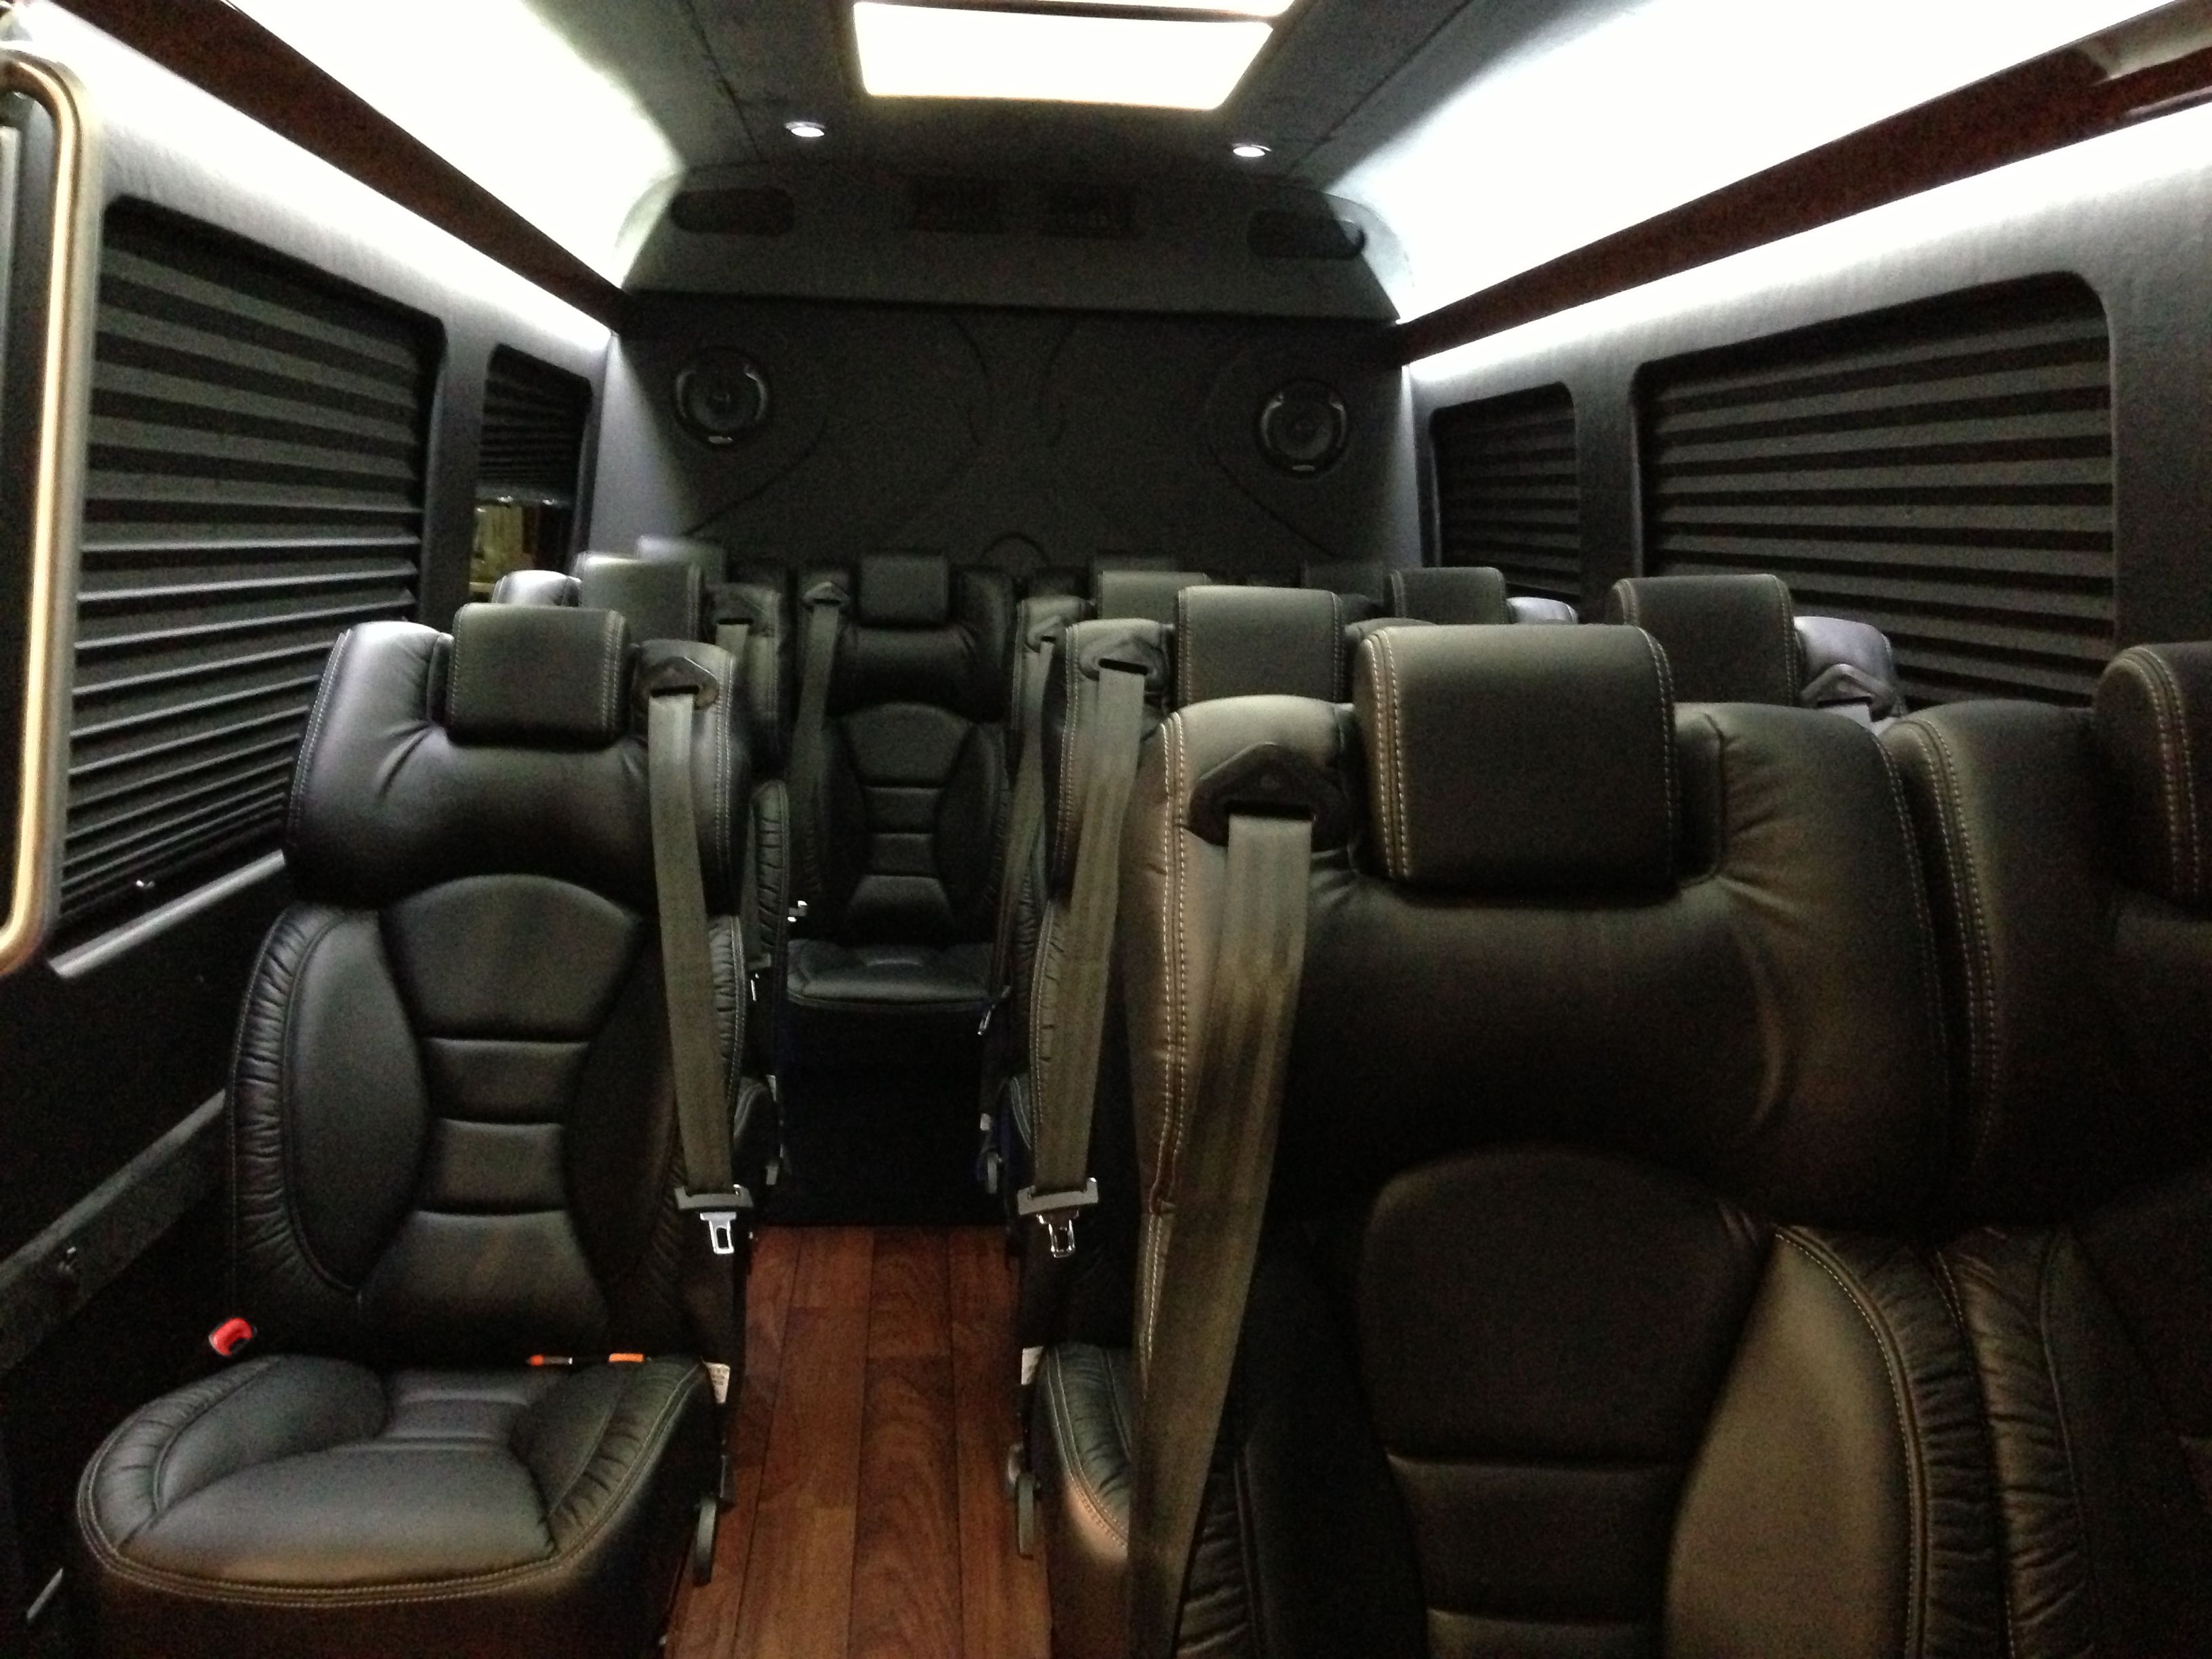 Mercedes Sprinter Mini Bus Interior With Images Mini Bus